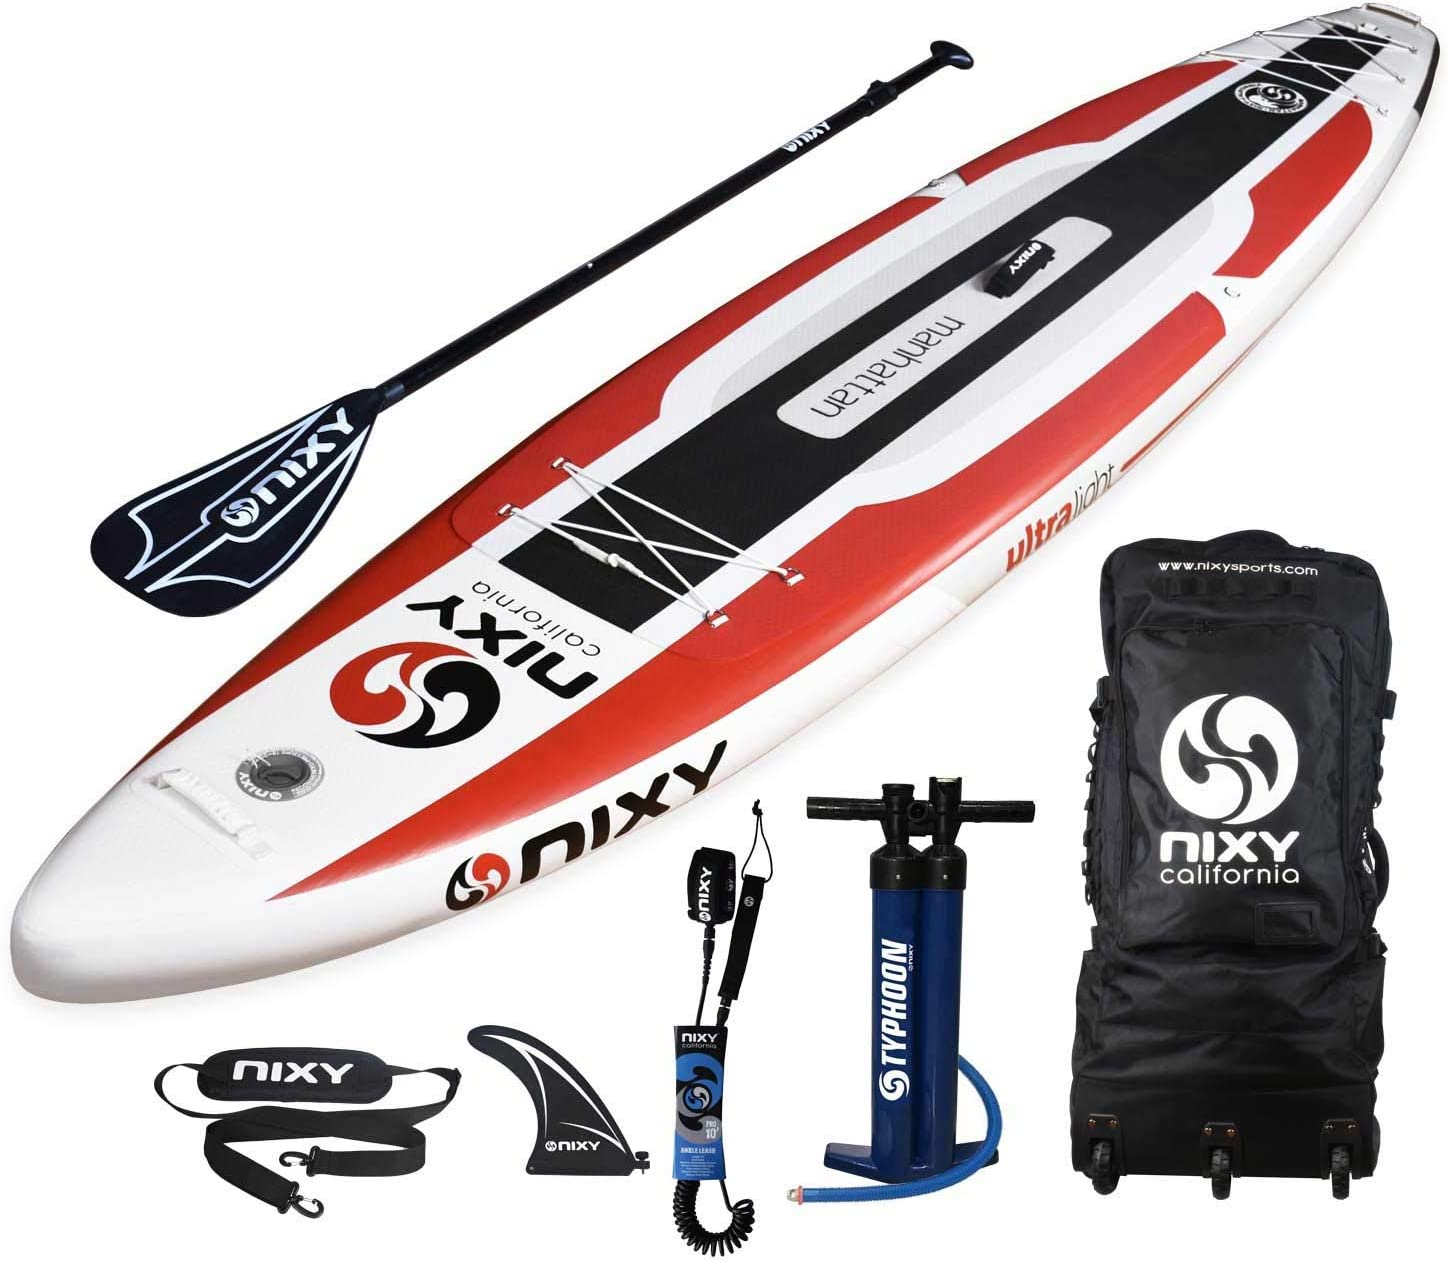 NIXY Manhattan Inflatable Stand Up Paddle Board. Touring and Trekking Premium Lightweight SUP built with the Latest Dropstitch Technology. All Accessories included Paddle, Leash, Pump, Shoulder Strap, Carry Bag 12 6 x 30 x 6 Youth and Adult Outdoor Sports